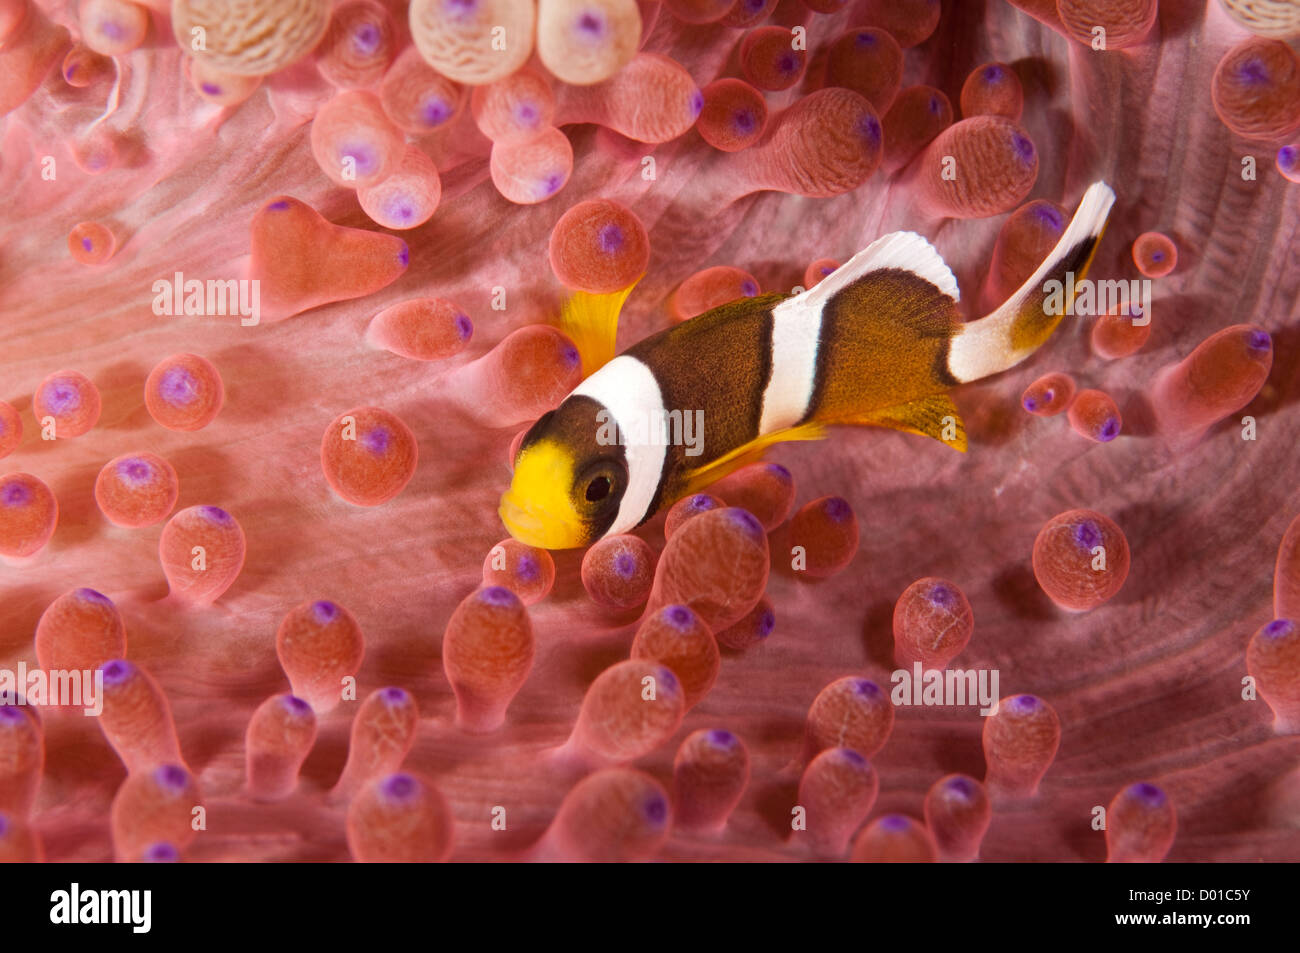 Juvenile Clark anemonefish, Amphiprion clarkii, in a colorful anemone Komodo Indonesia - Stock Image